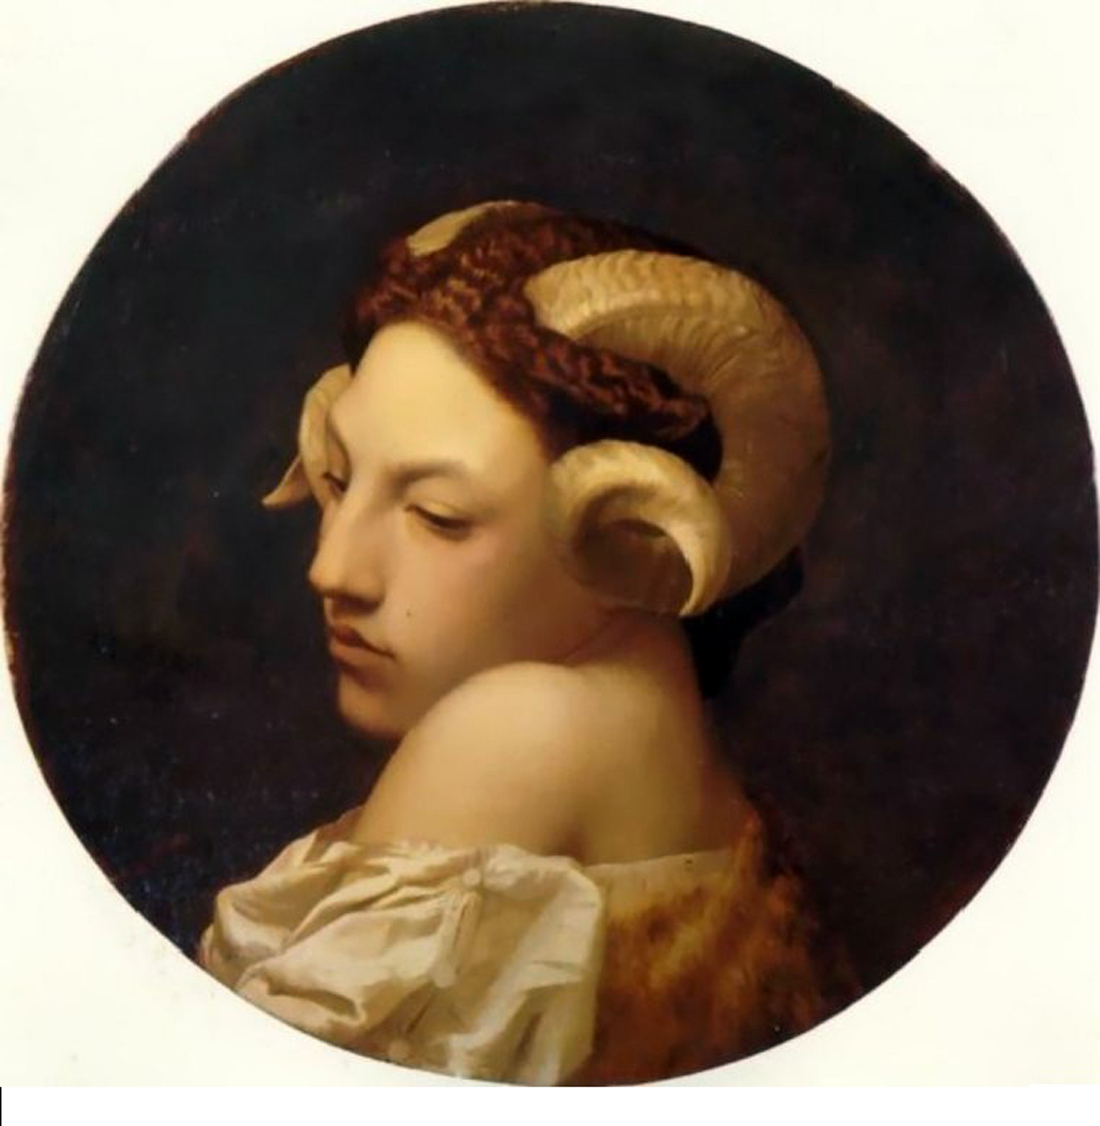 Exceptionnel The Bacchante - Gerome, Jean-Leon - Gallery - Web gallery of art NW96